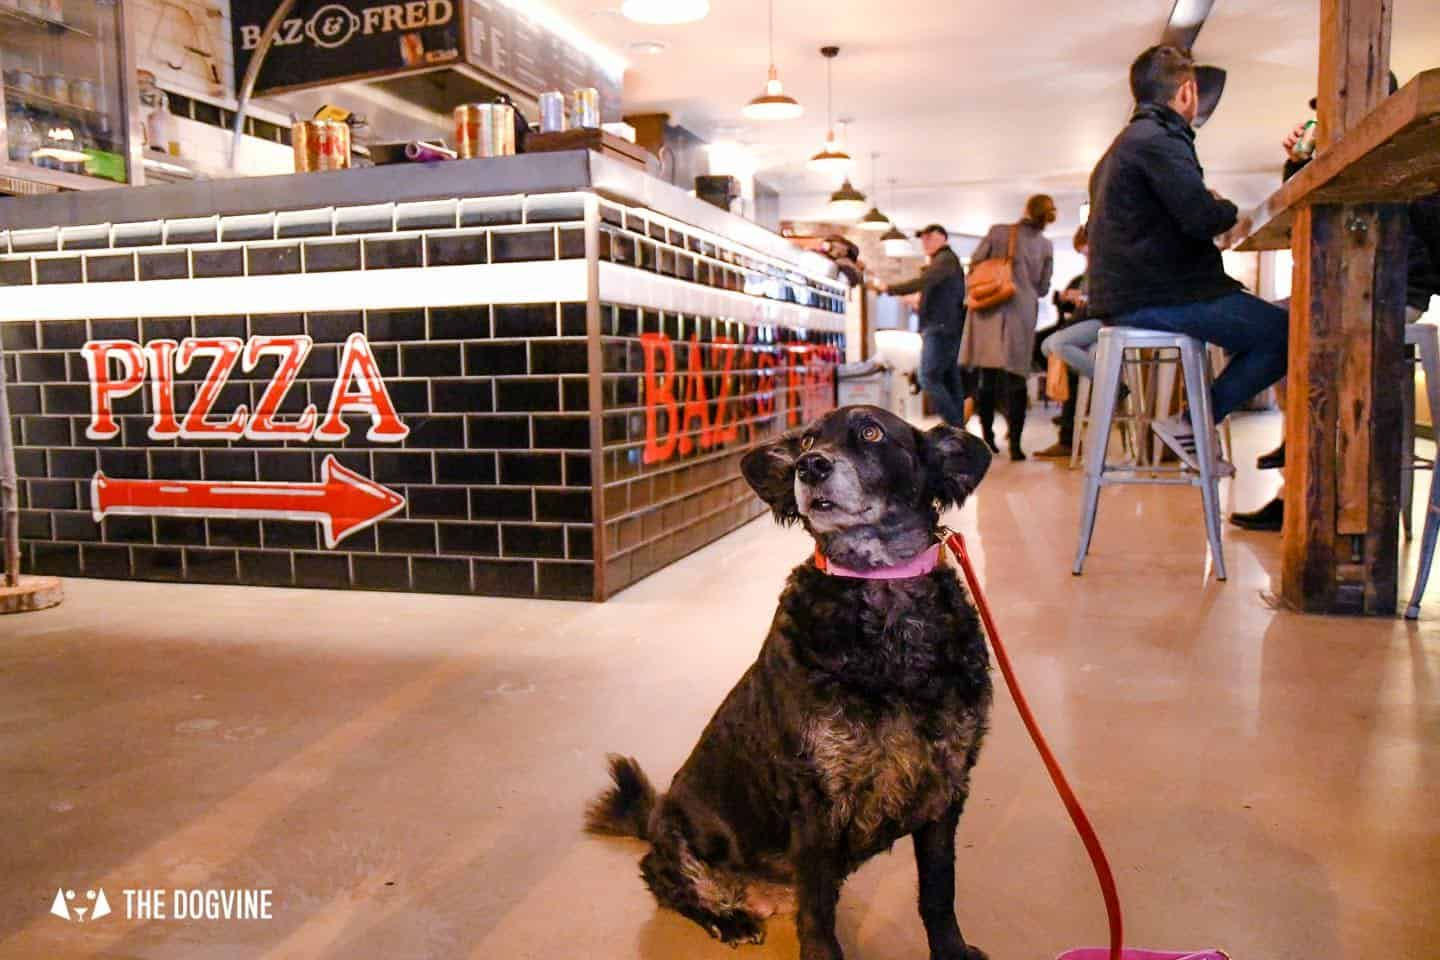 Best Dog-friendly Street Food Markets and Halls in London - Flat Iron Square Indoors